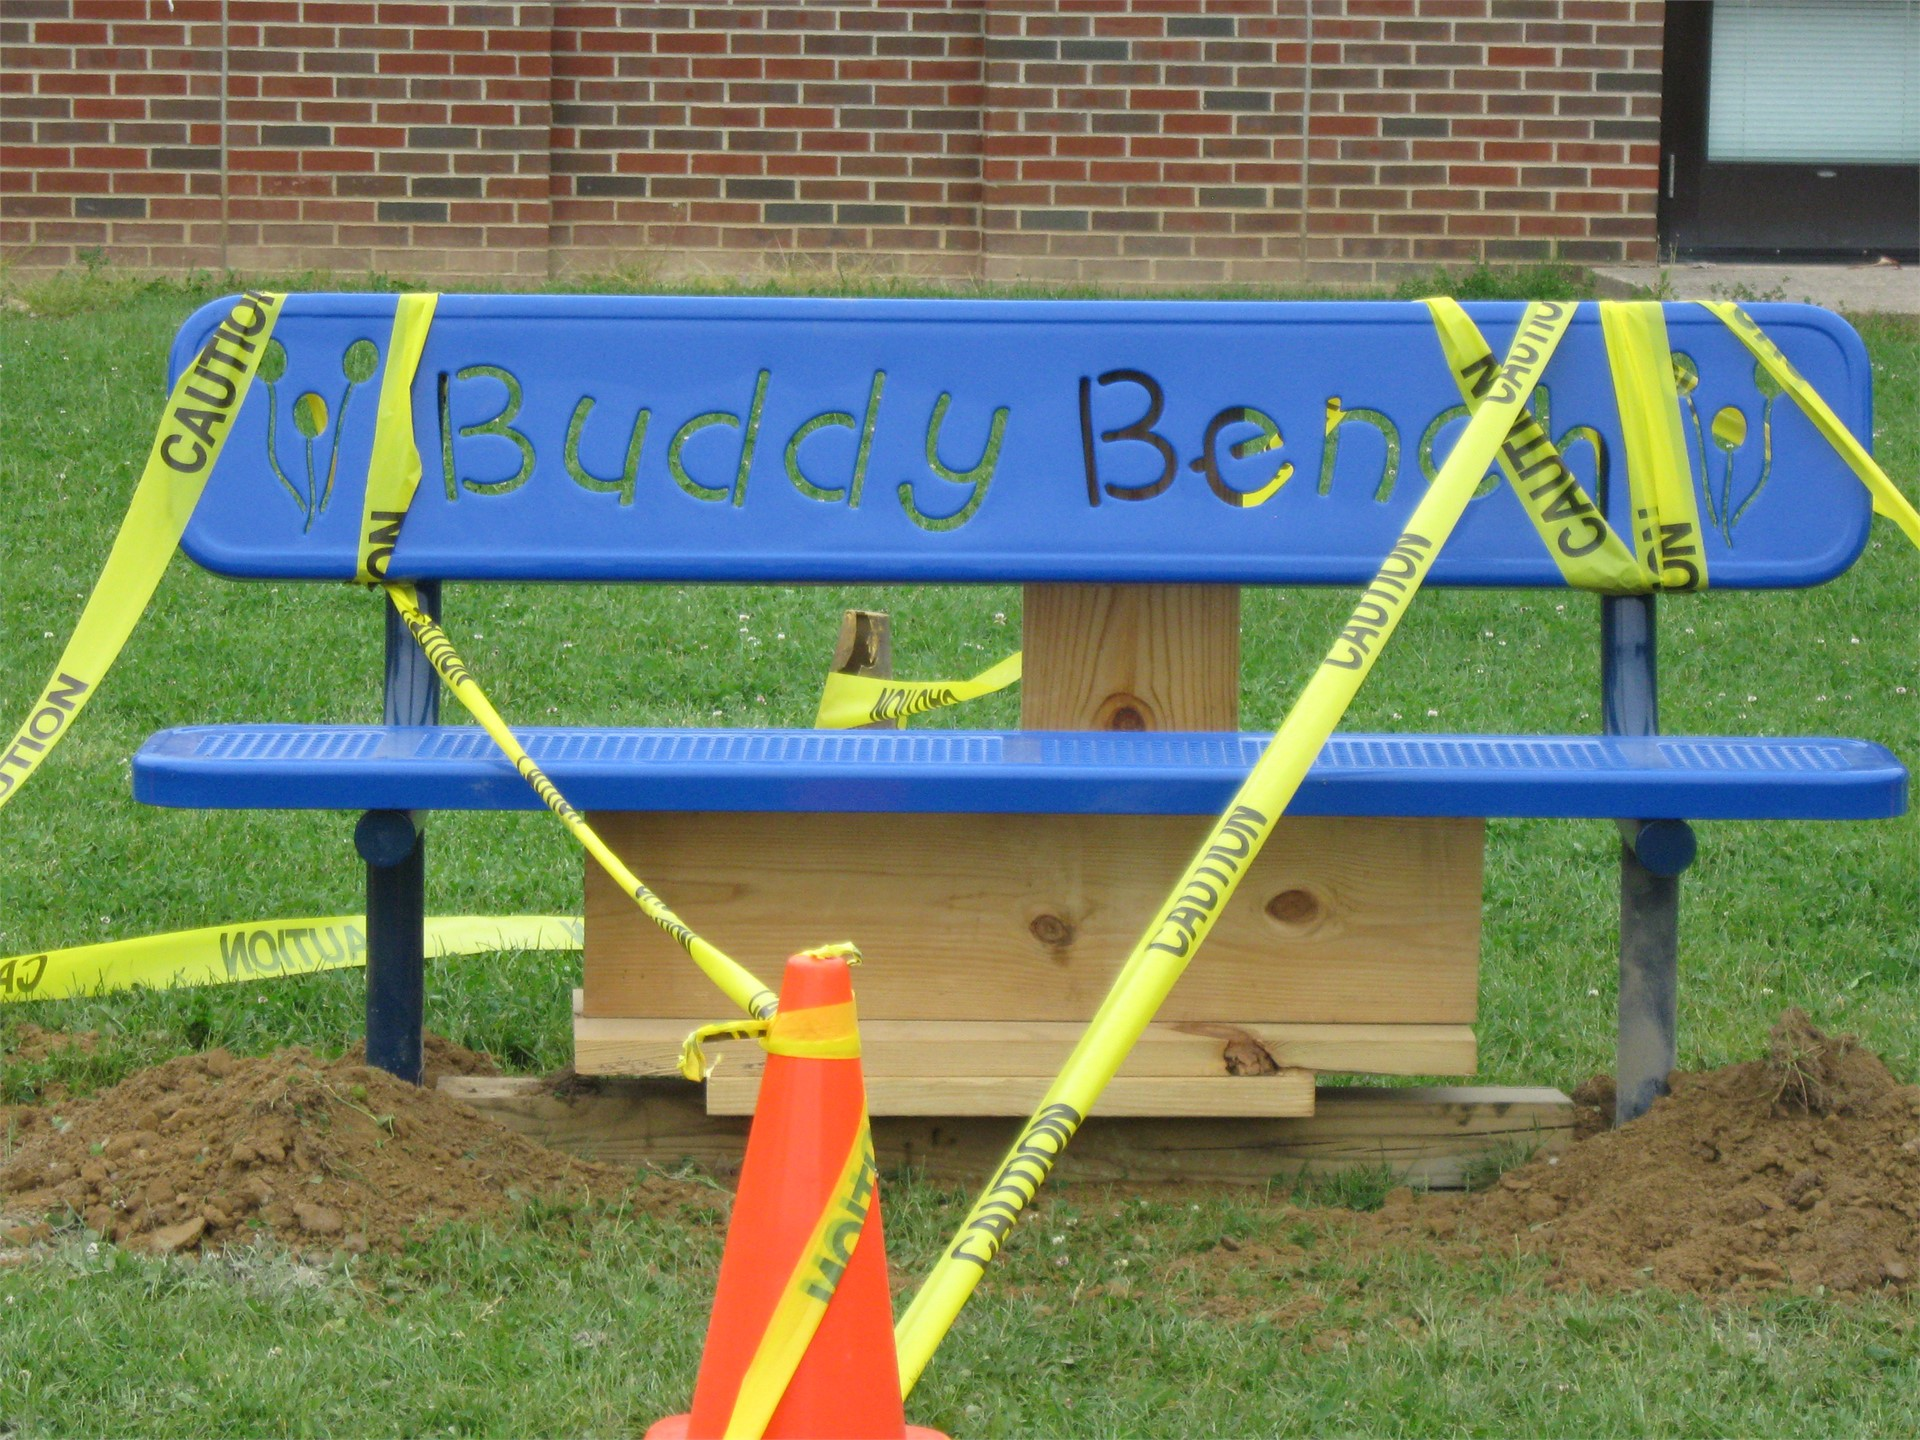 Installing our new Buddy Bench1